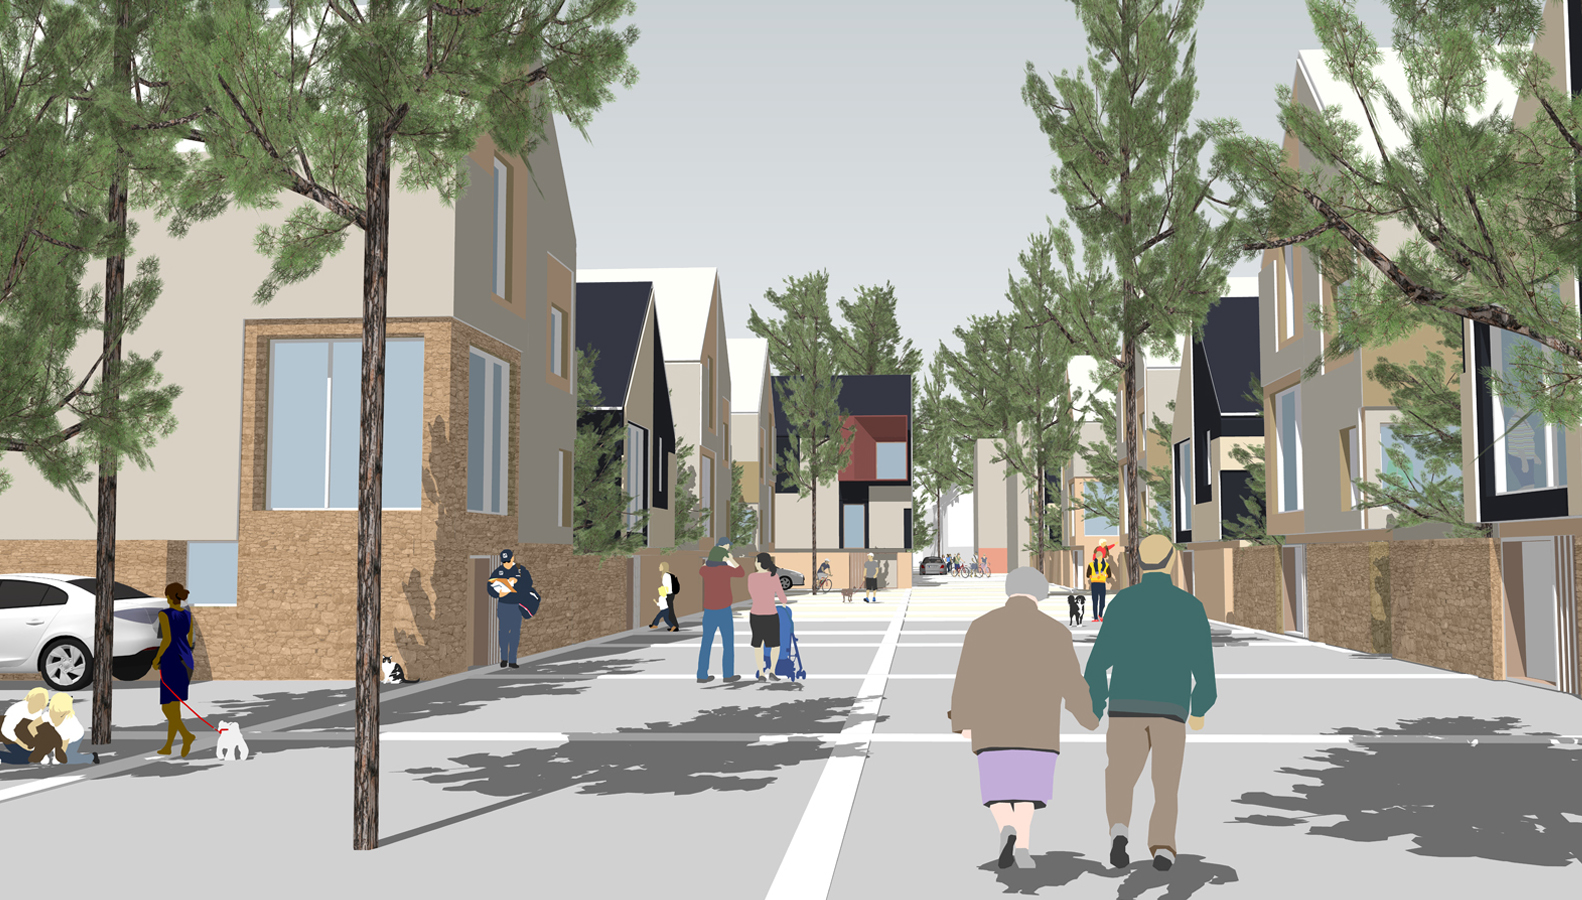 Tweedbank shortlisted for Masterplan of the Year at the AJ Architecture Awards